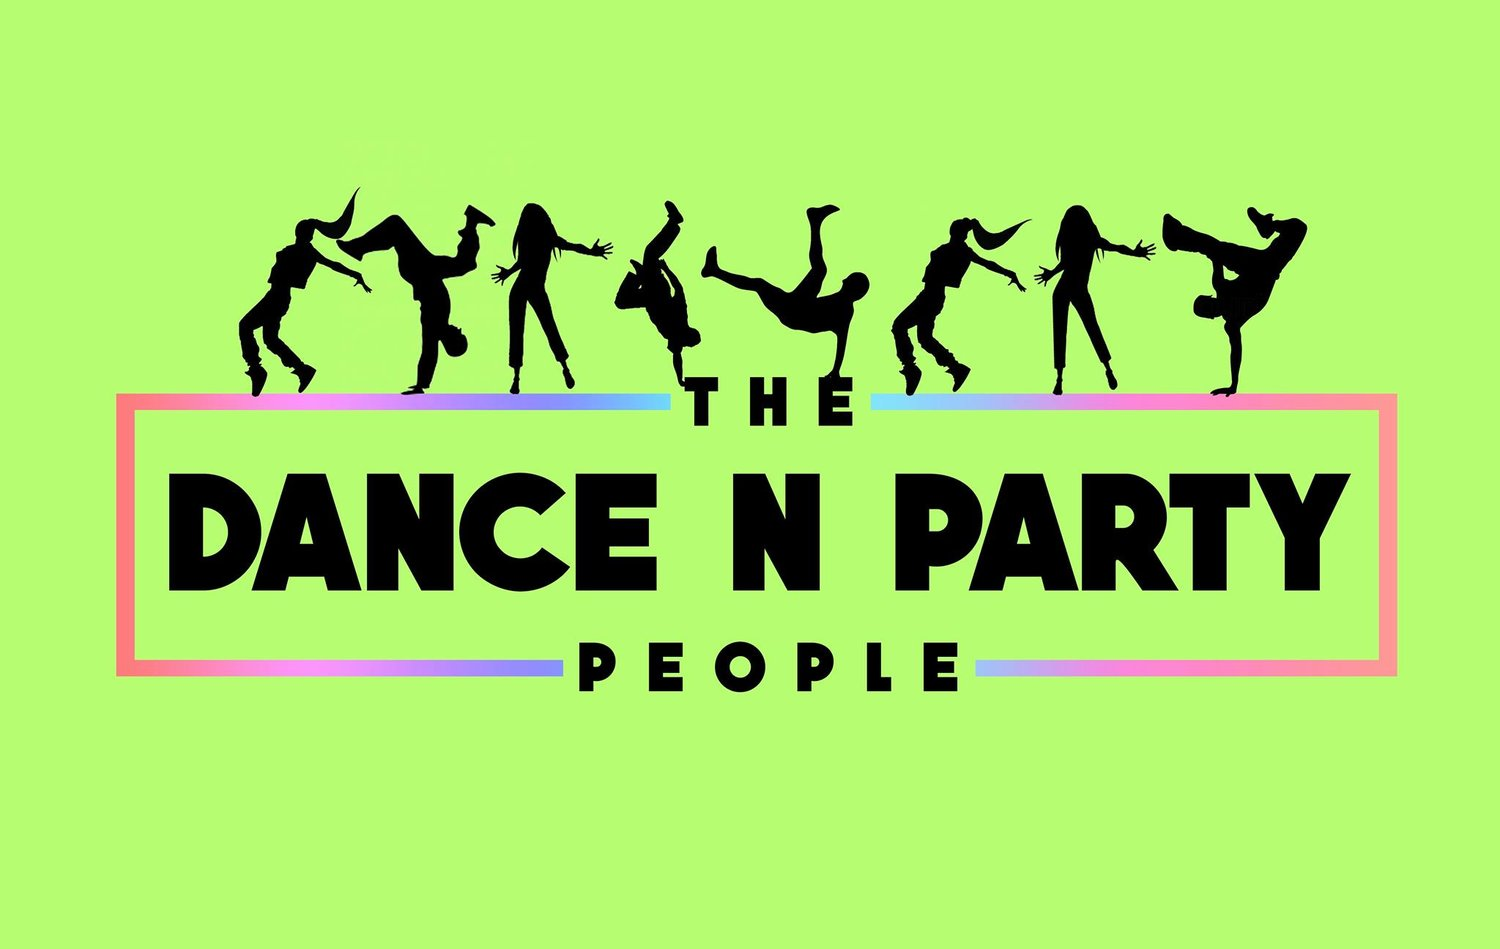 The Dance 'N' Party People